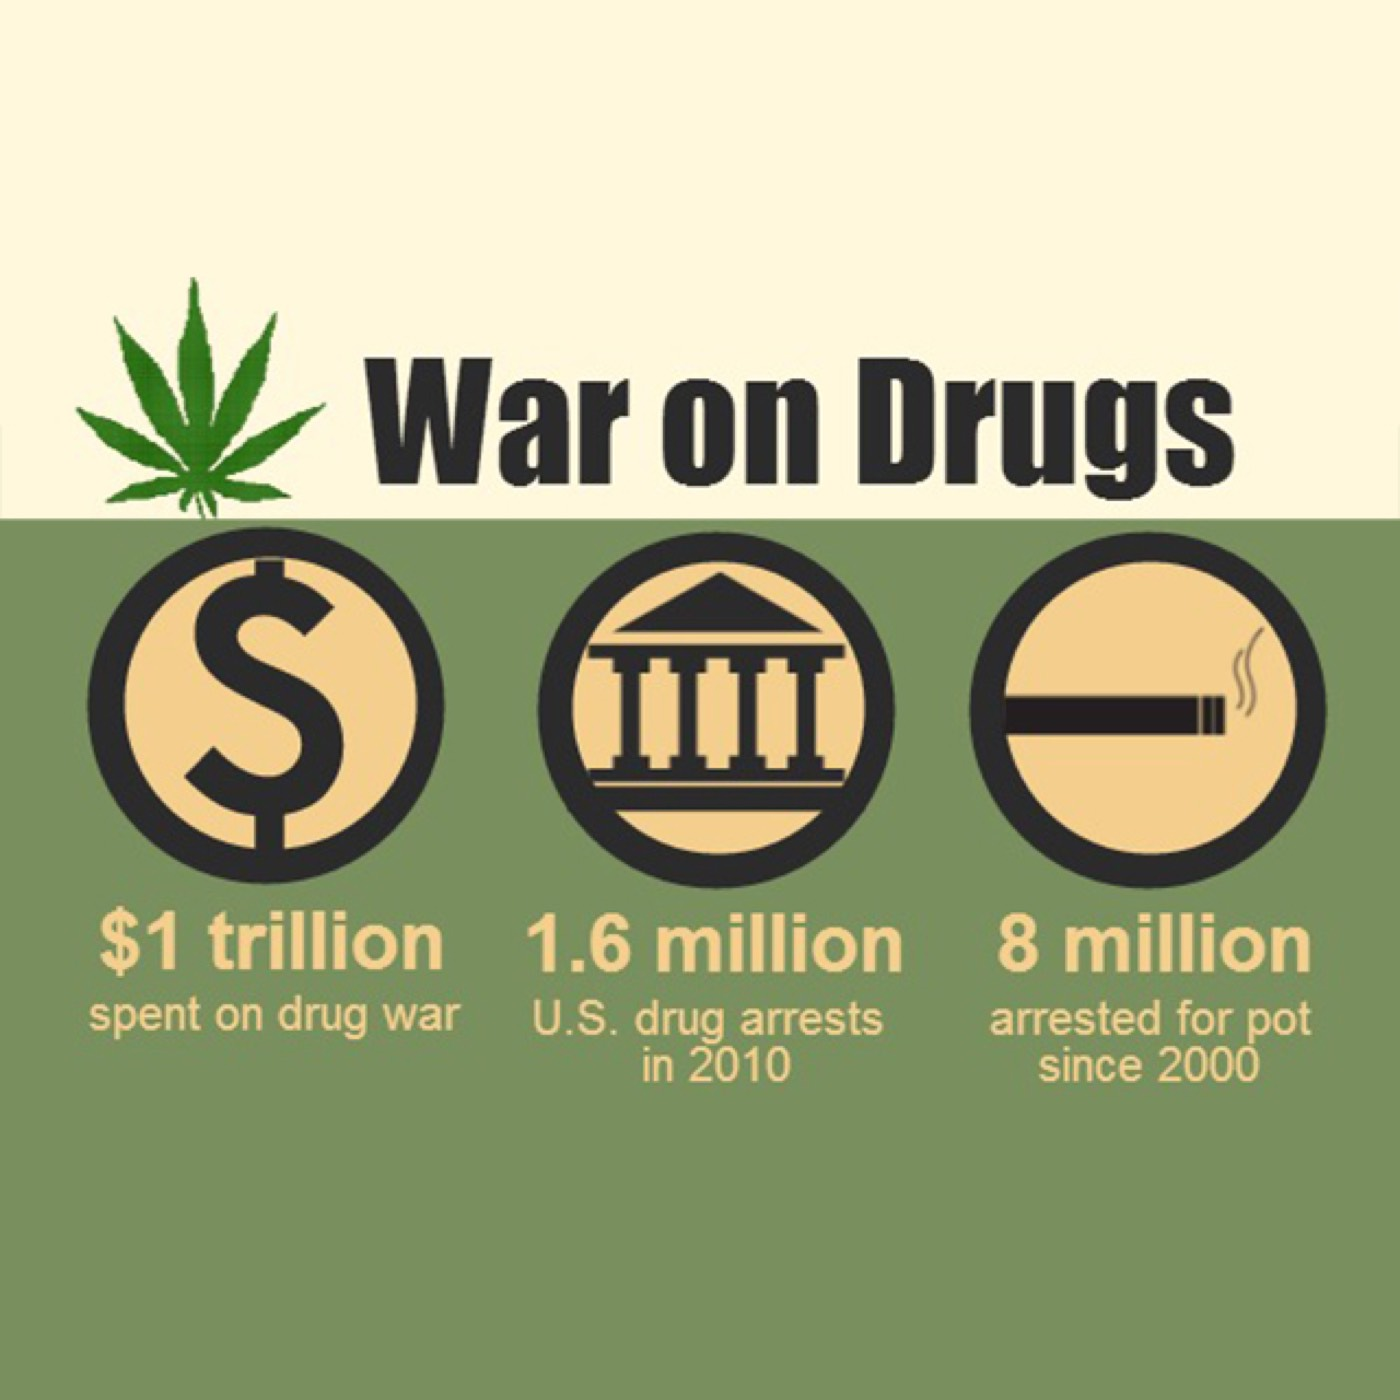 (2015/06/09) Looking to avert further tragedy (War on Drugs™)